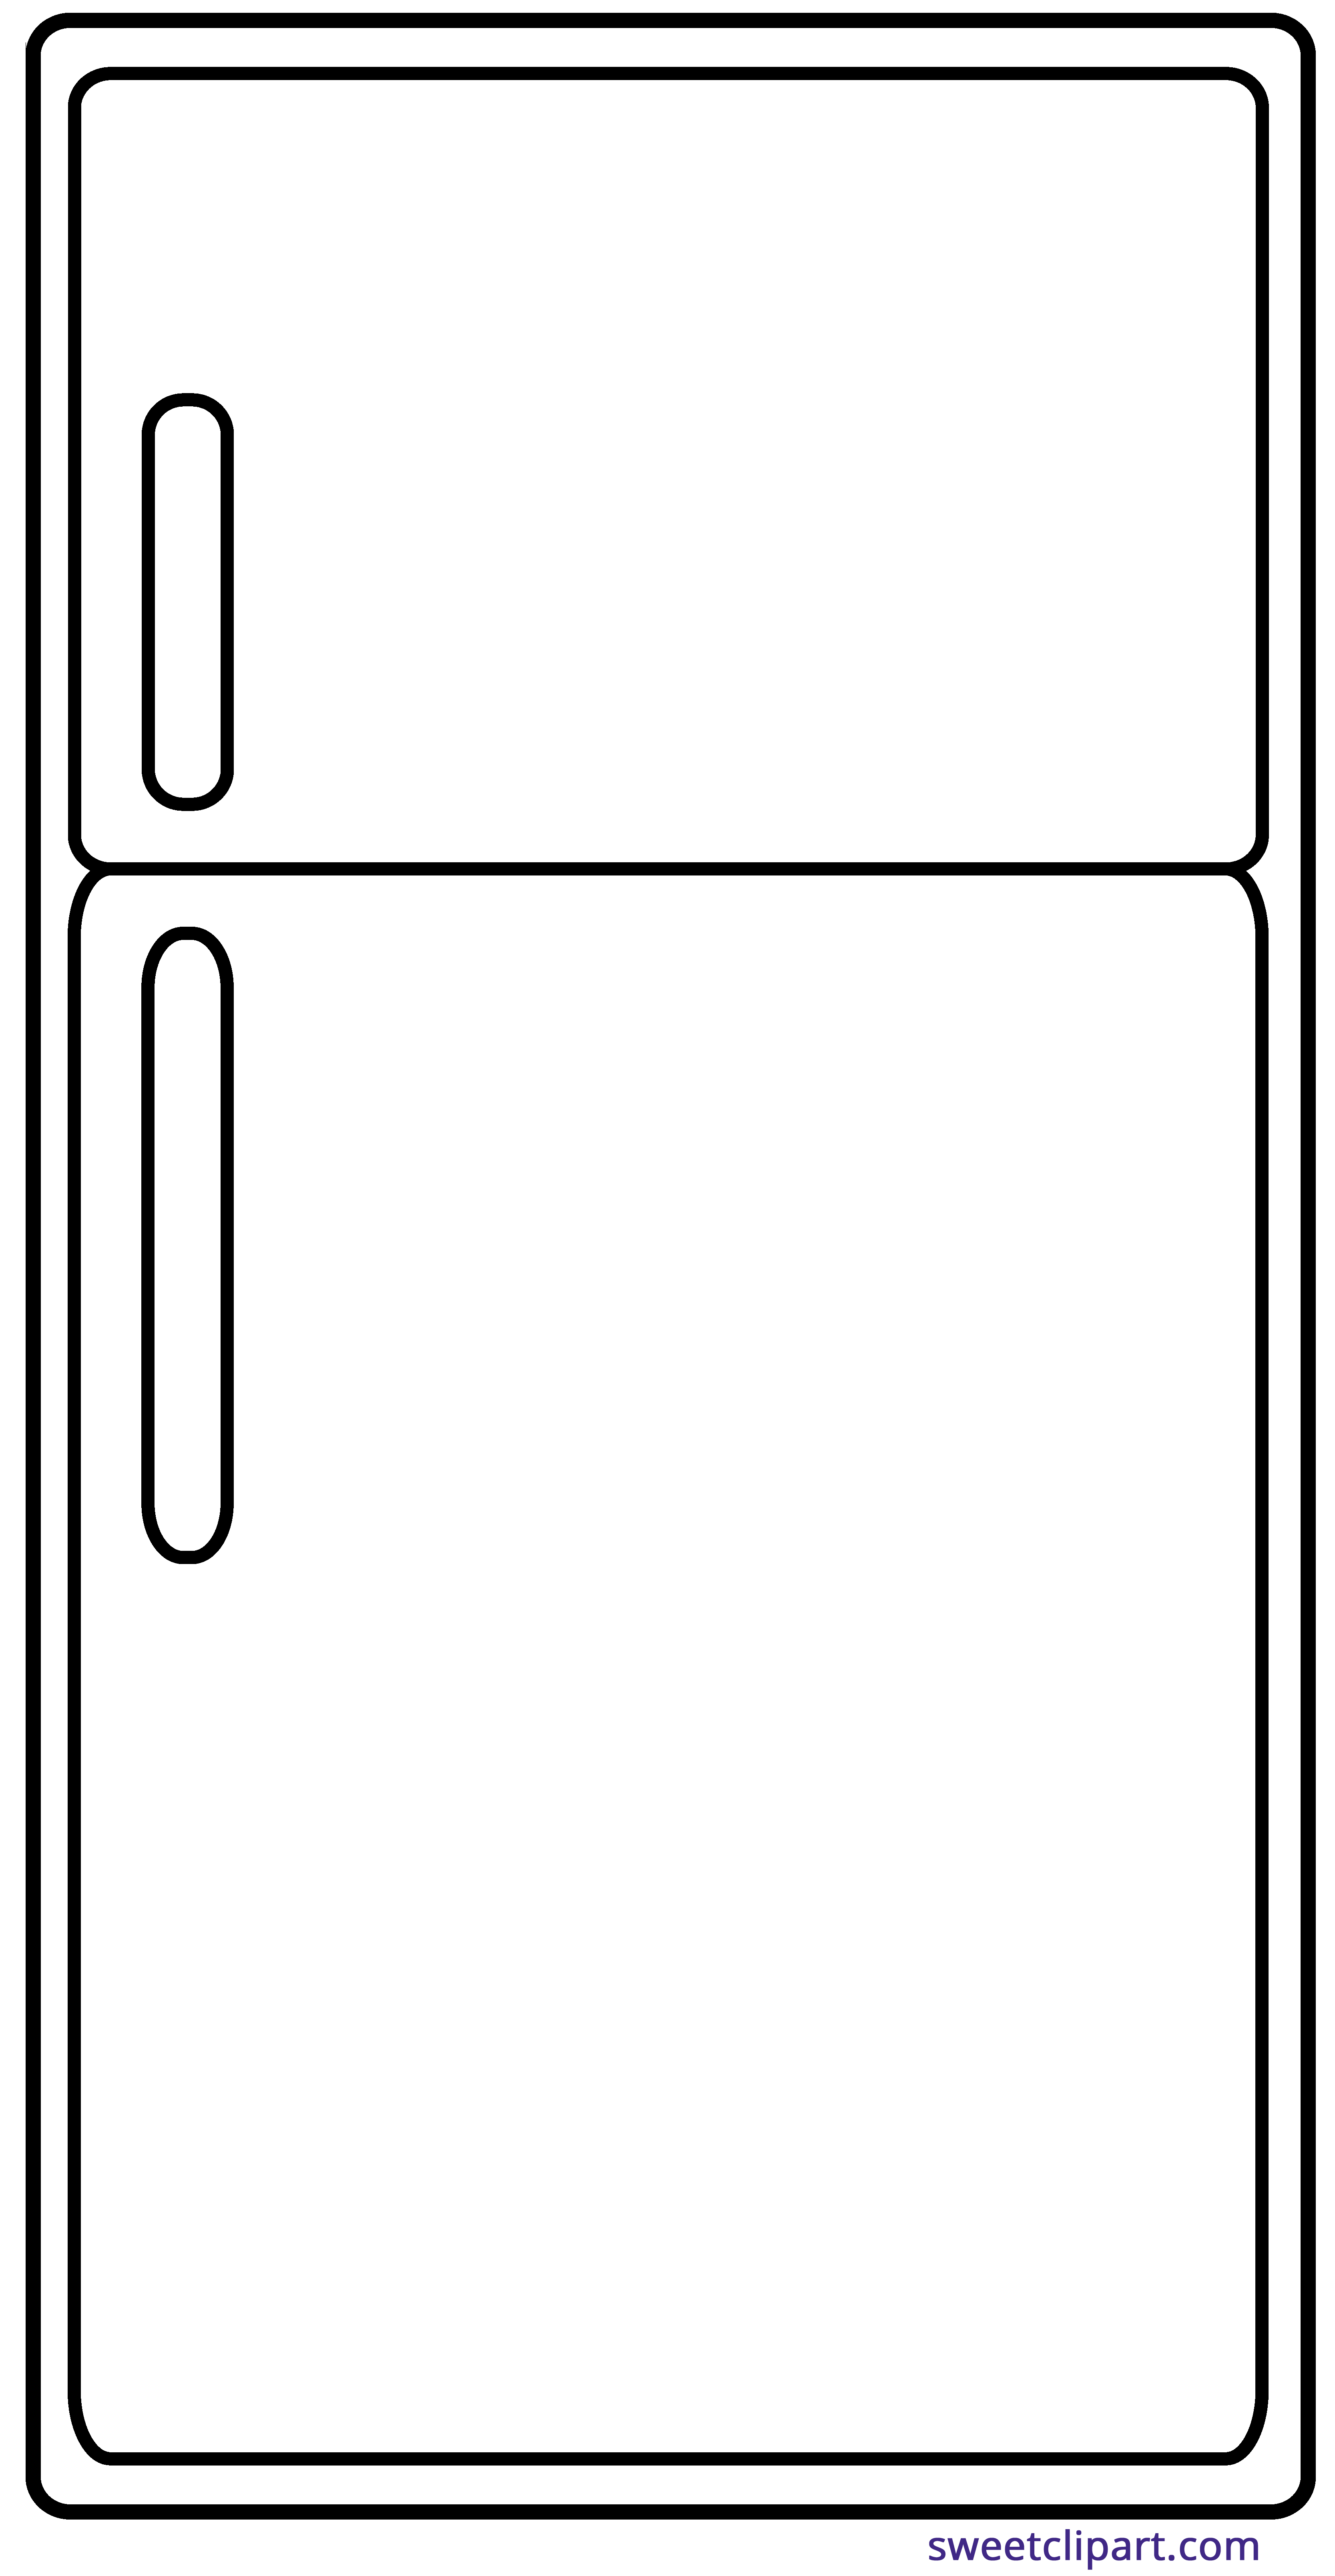 Refrigerator clipart. Outline sweet clip art